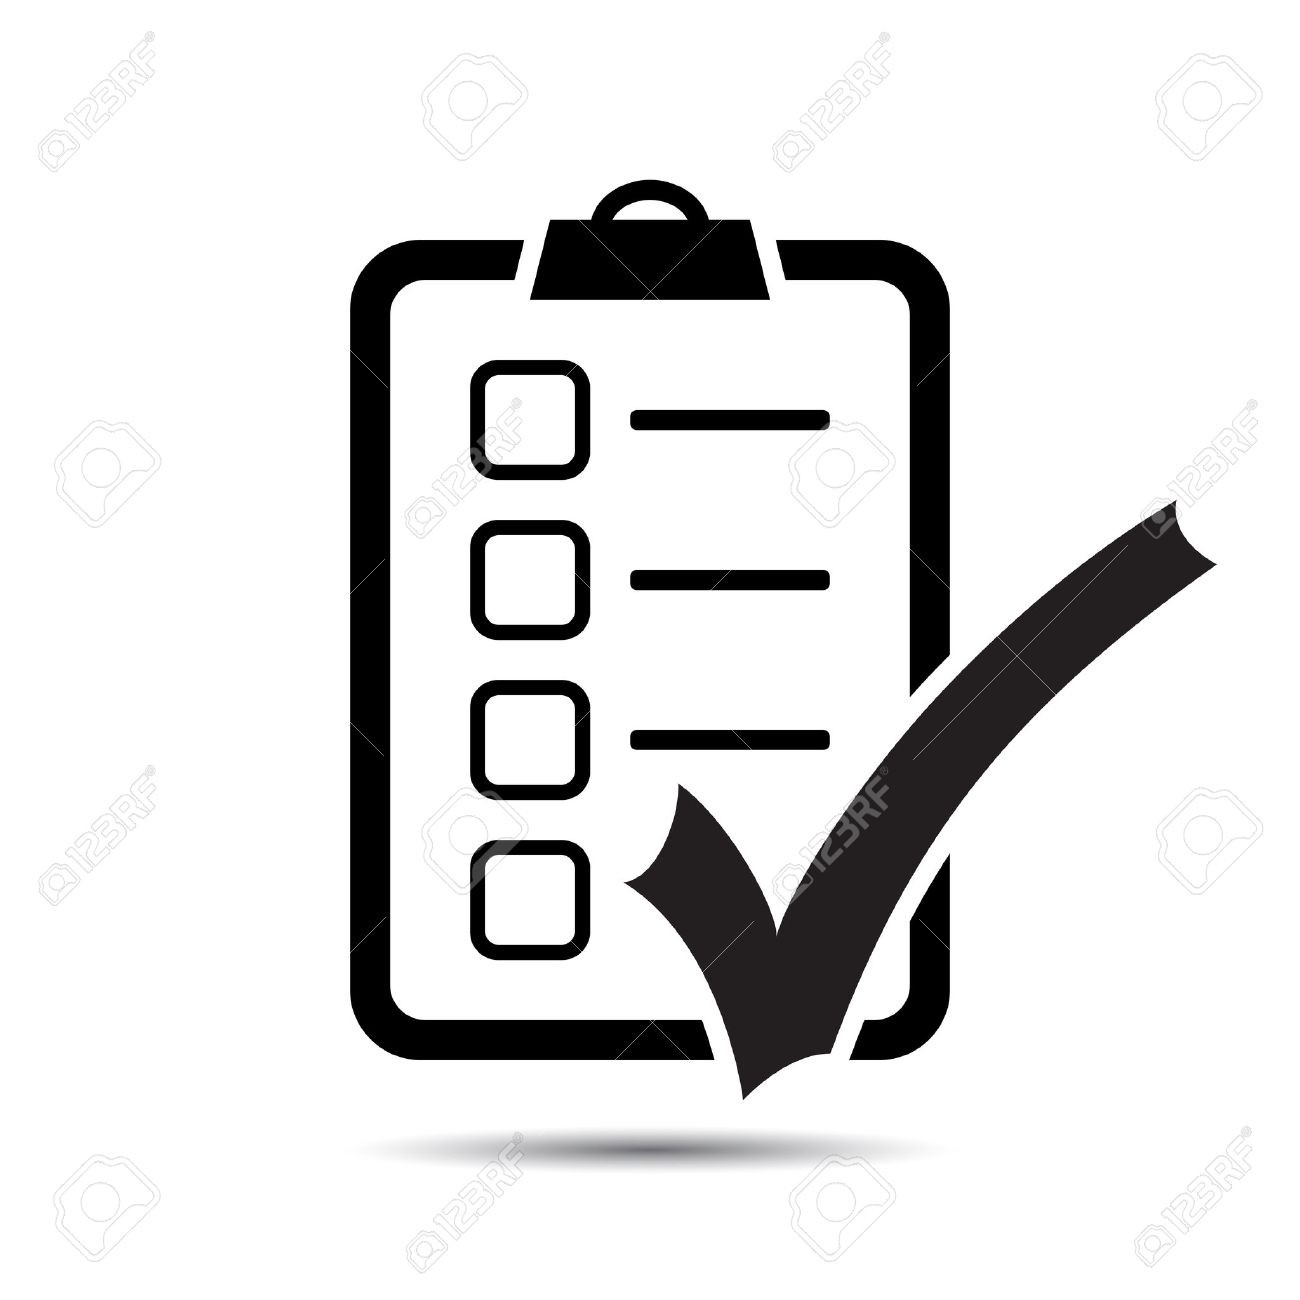 Check List Icon. Vector Royalty Free Cliparts, Vectors, And Stock regarding Checklist Icon Vector 25956